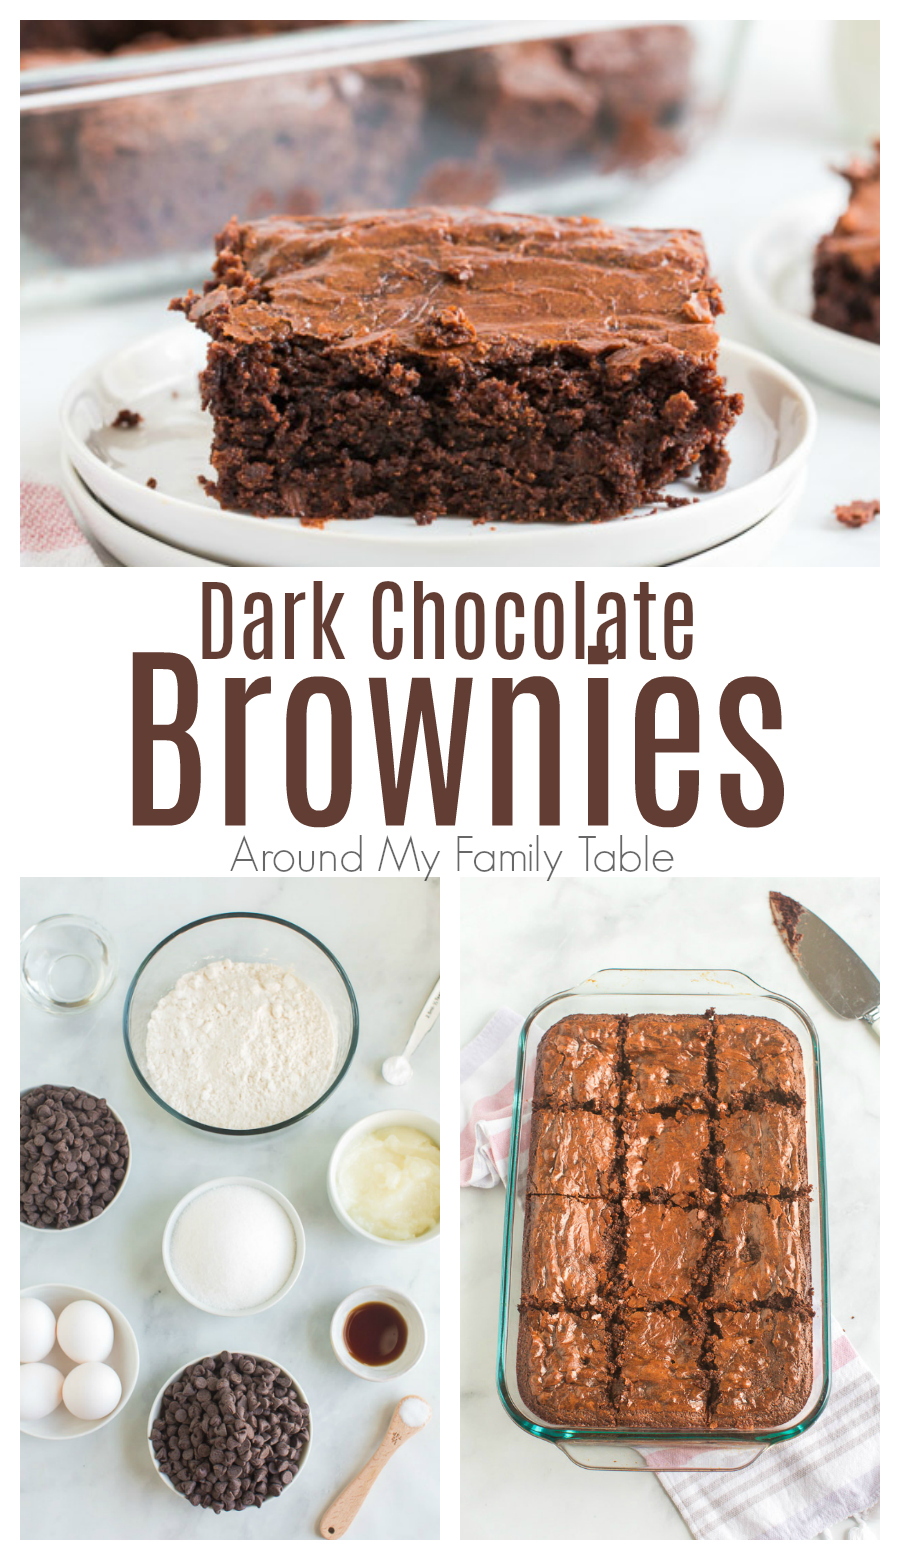 Dark chocolate brownies made with coconut oil are rich, fudgy, and have health benefits! Make this healthier brownie recipe for an easy dessert. via @slingmama